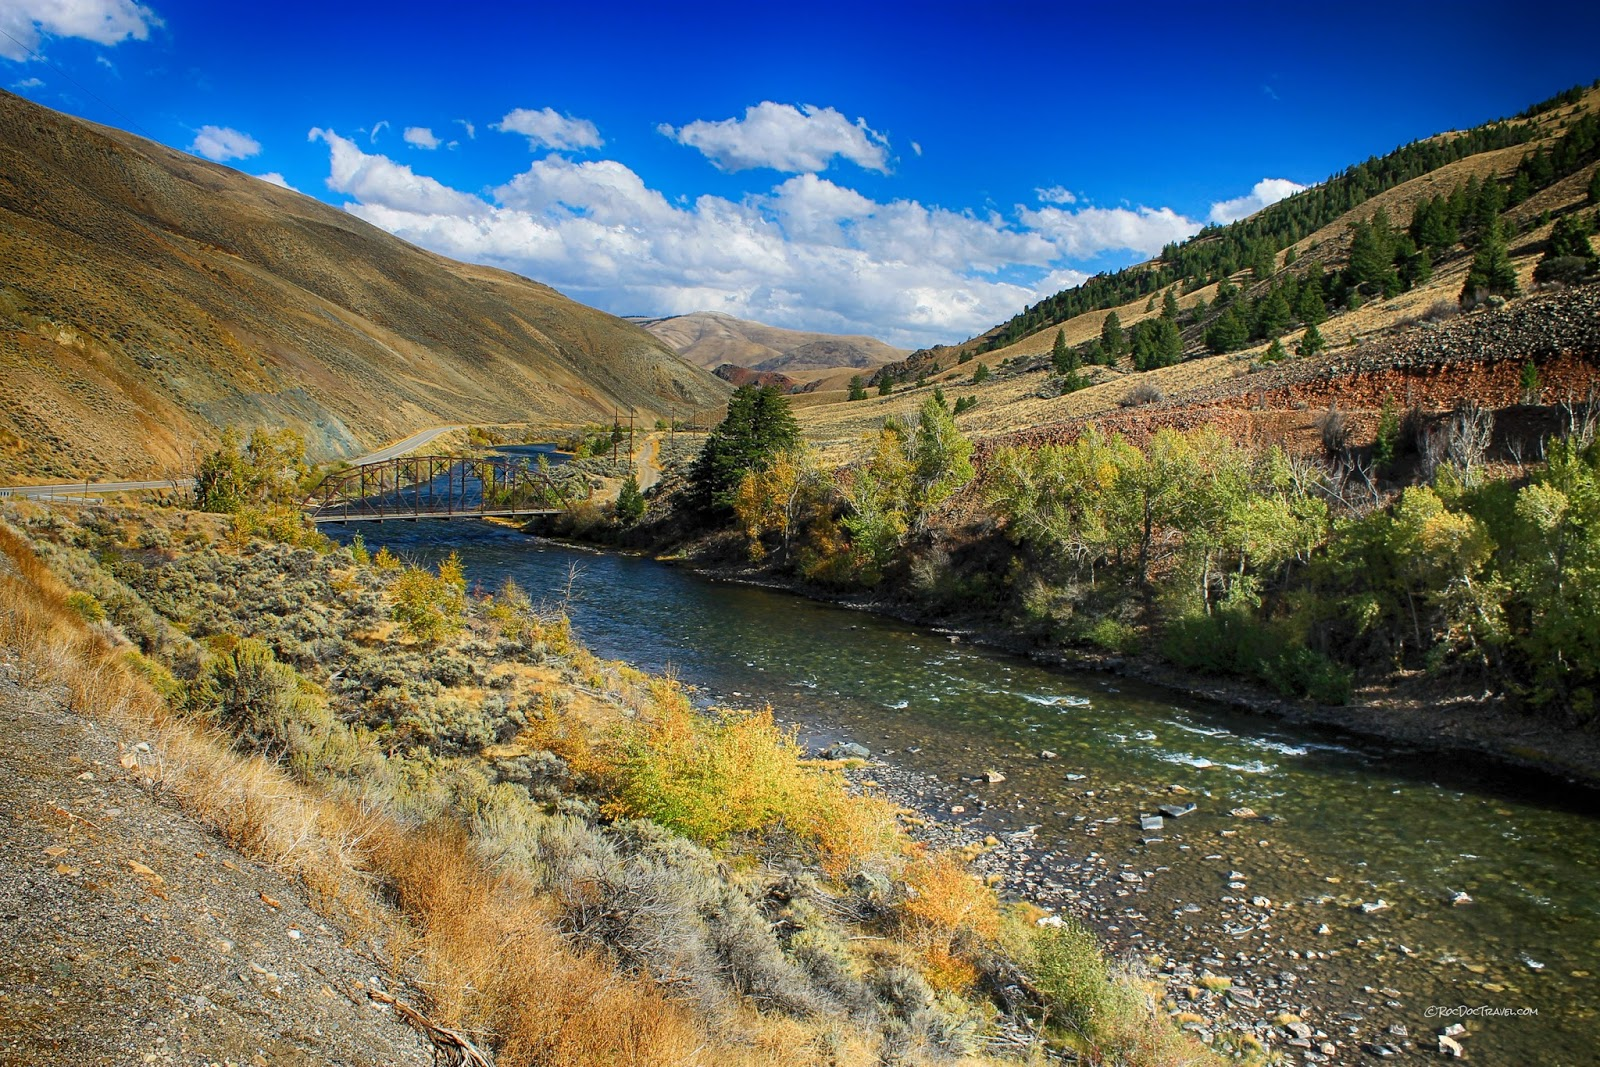 Salmon River Idaho geology field trip travel copyright RocDocTravel.com